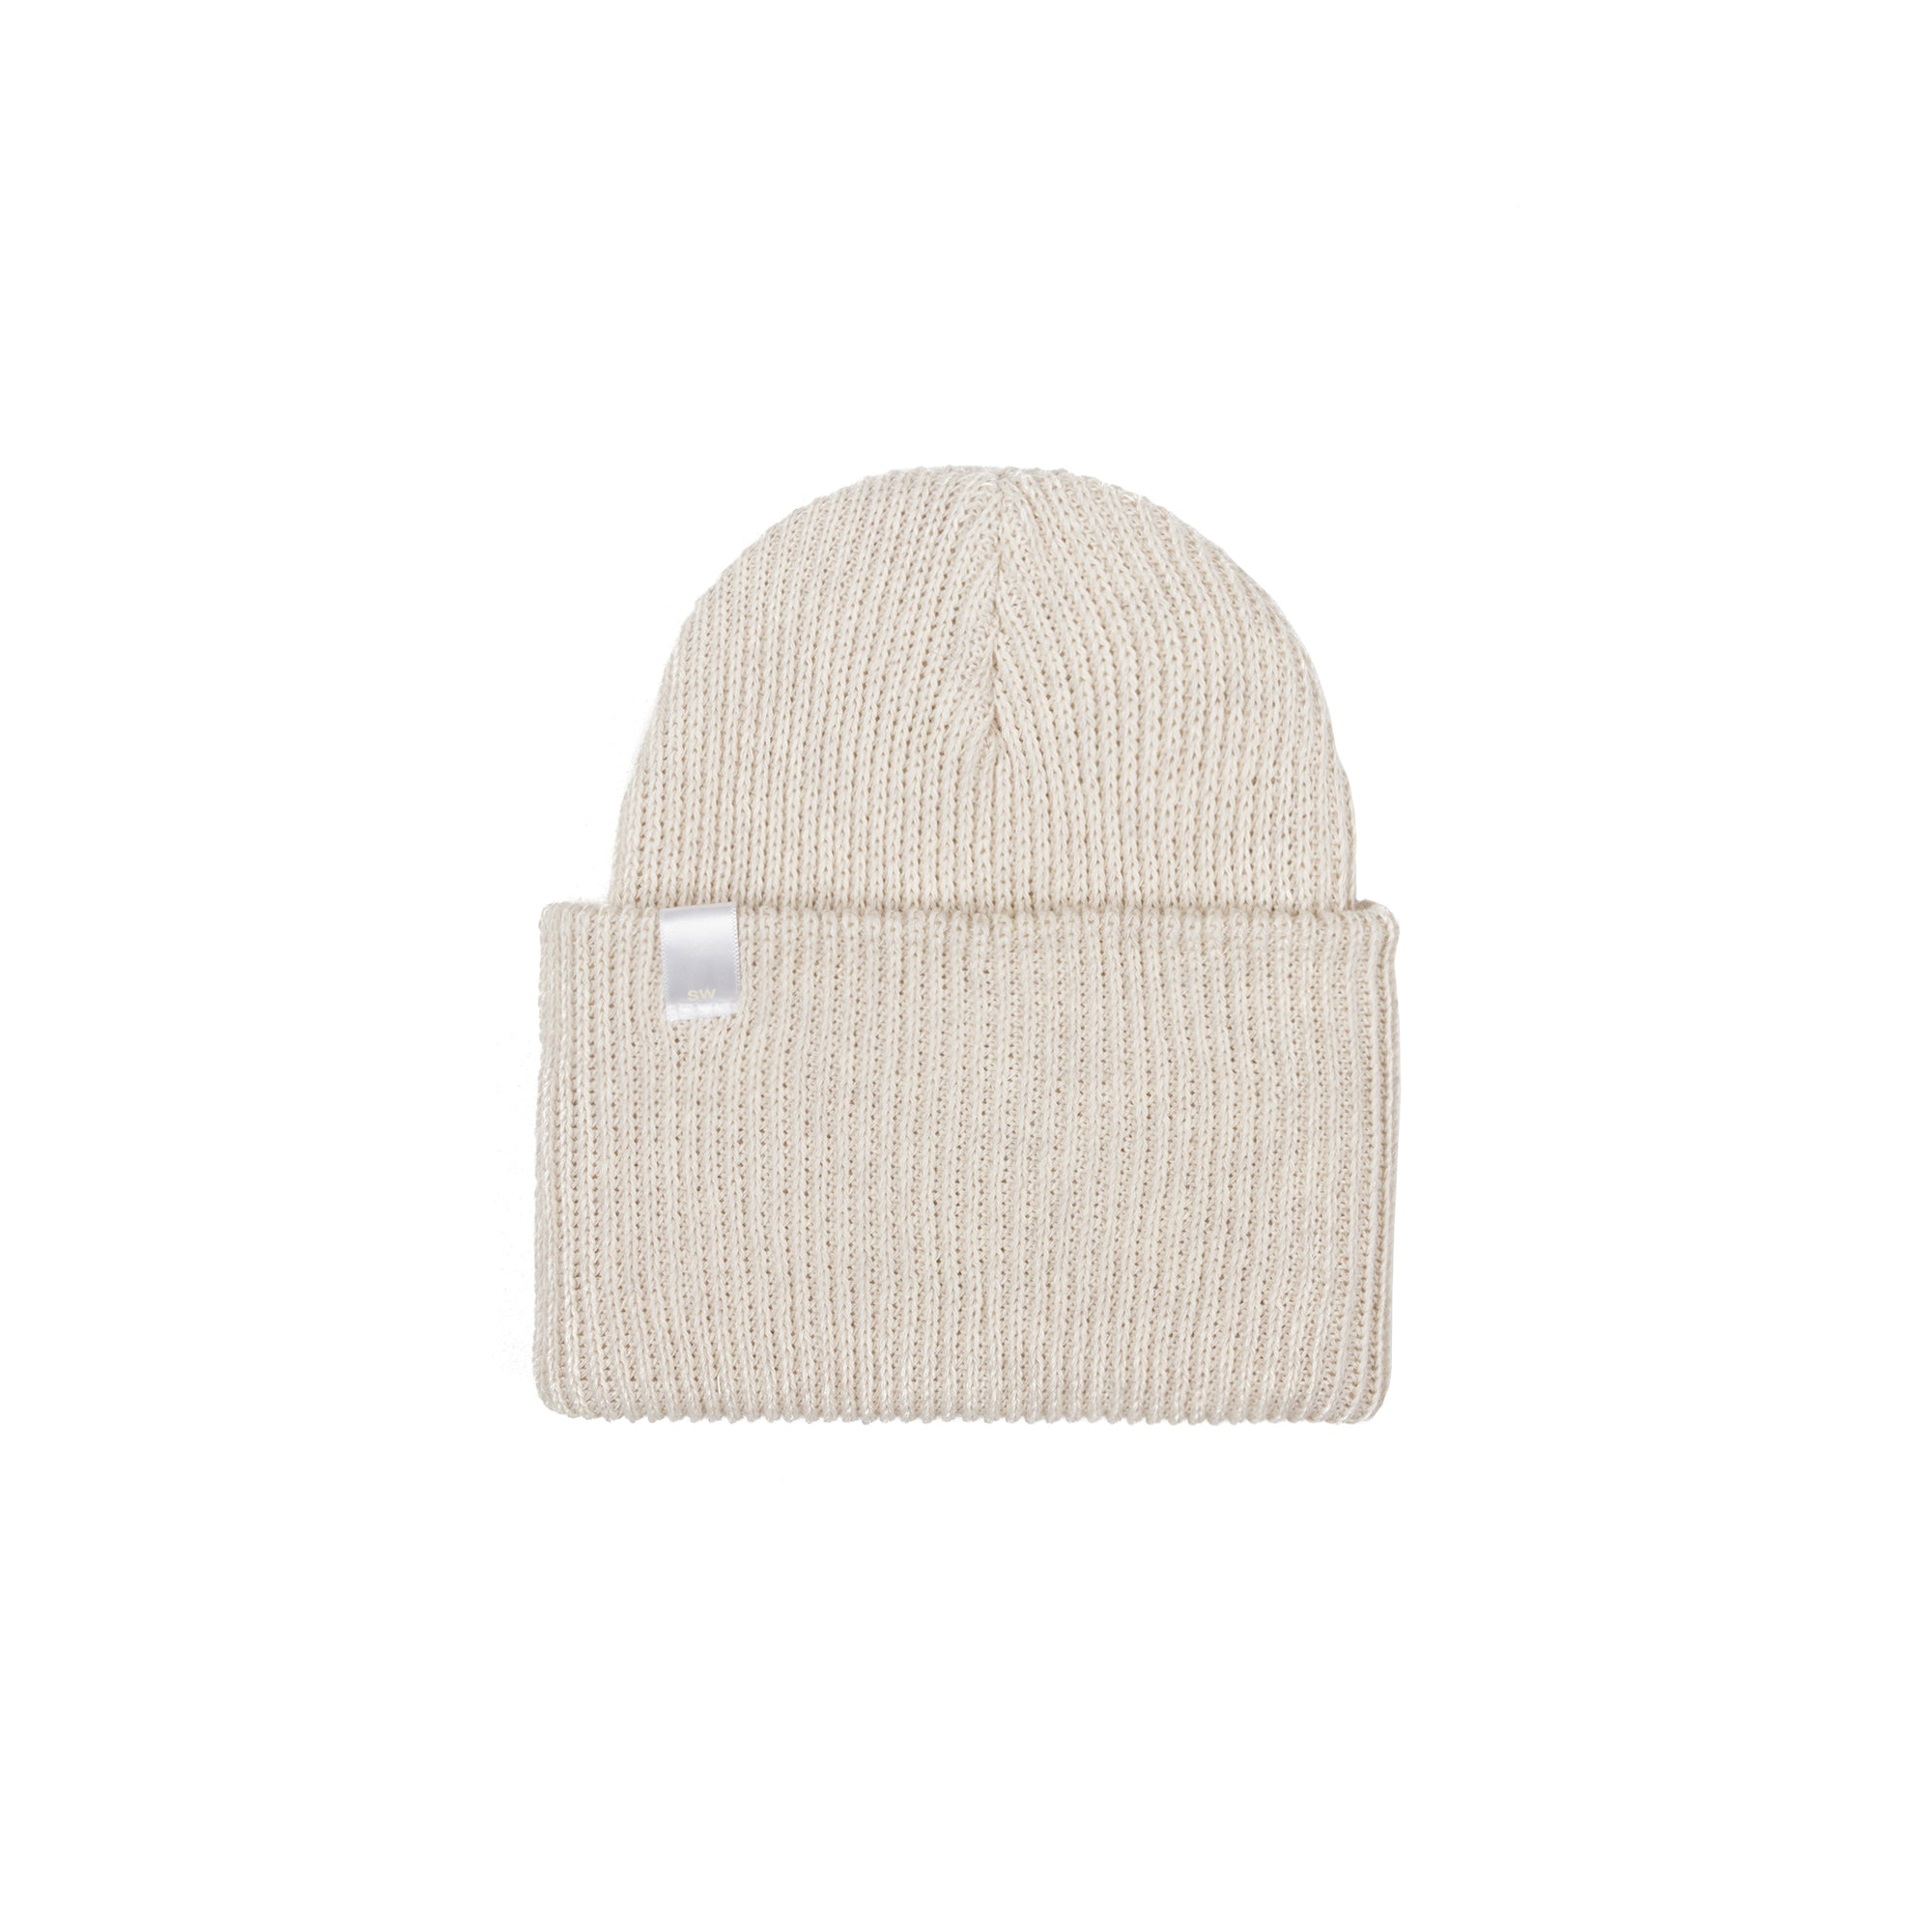 Beige Summer Tuque - Hats - Saintwoods